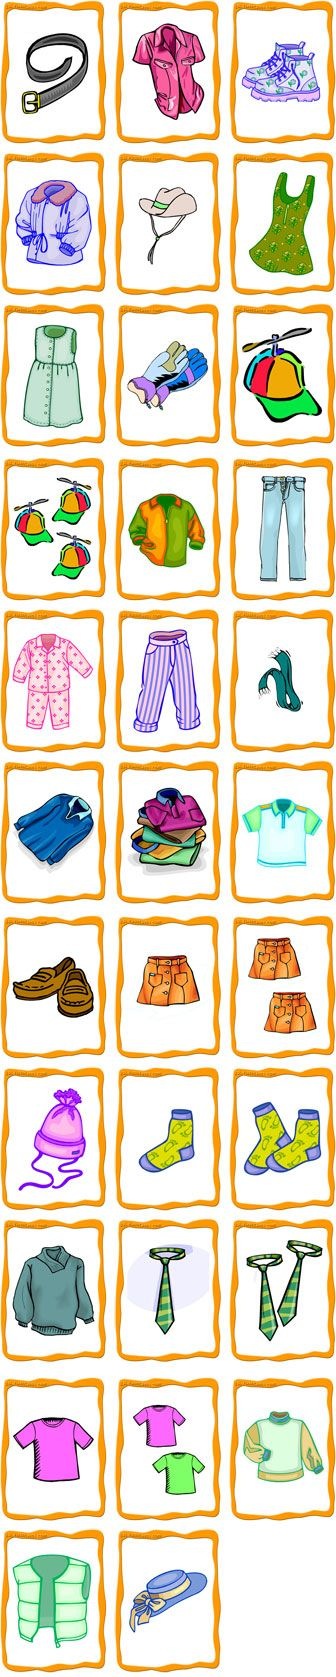 Clothing FlashCards Preview